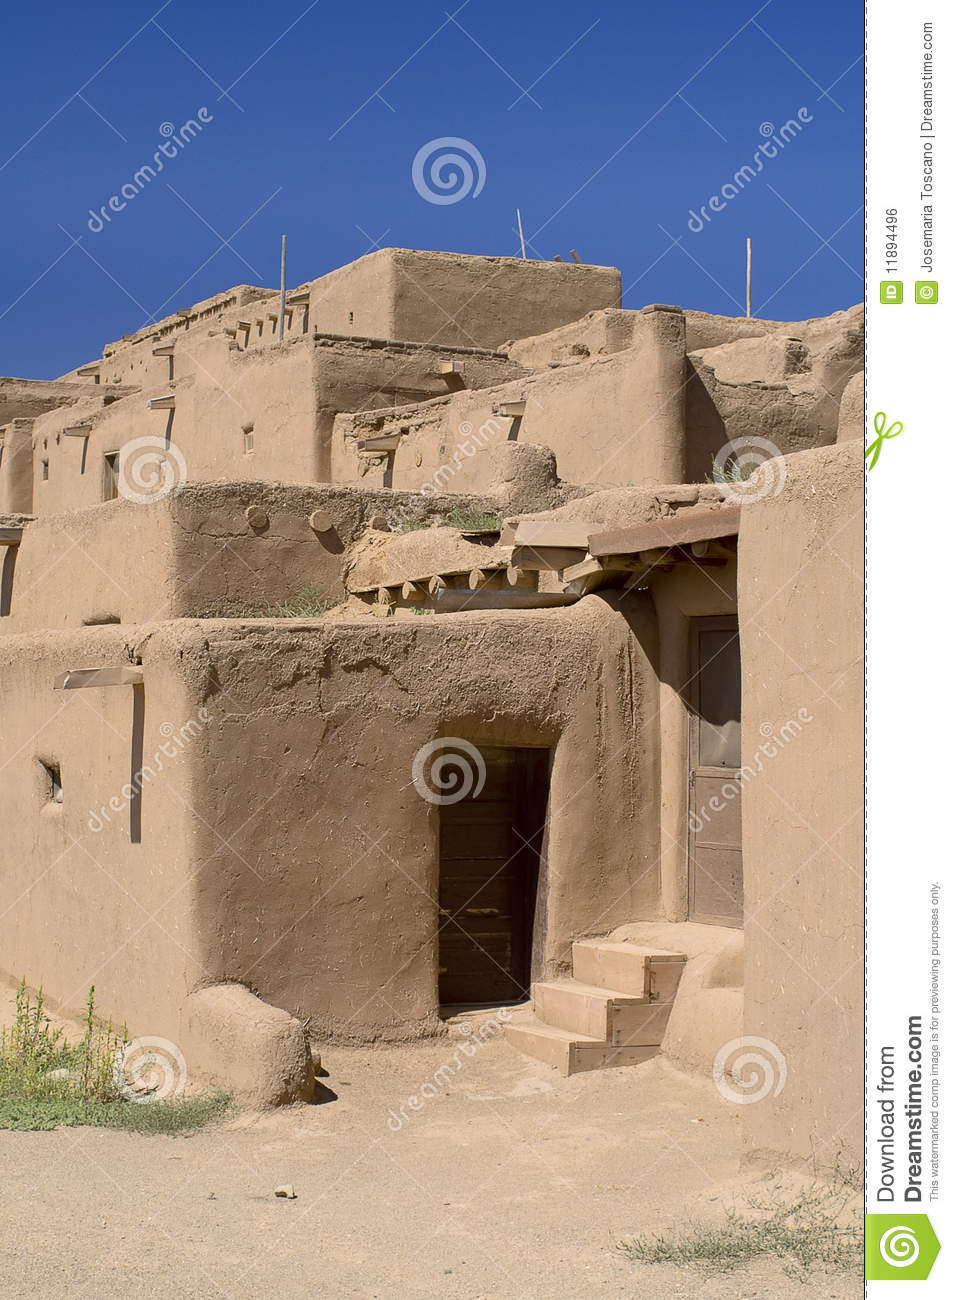 Adobe houses in the pueblo of taos stock photo image 11894496 - Pueblo adobe houses property ...